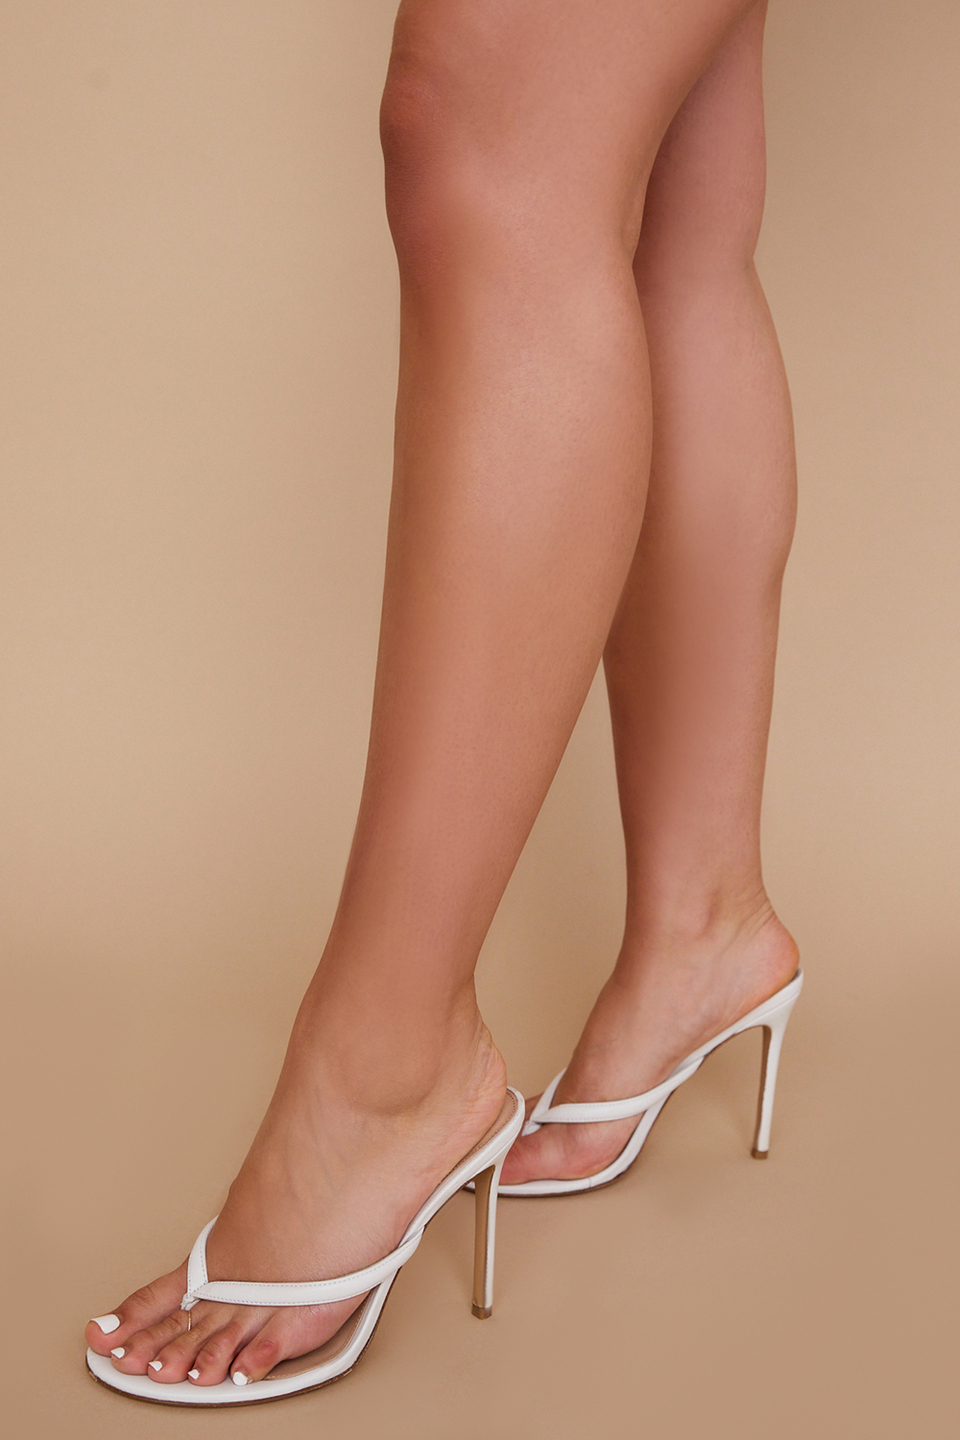 Lola White Leather High Heel Thong Sandals